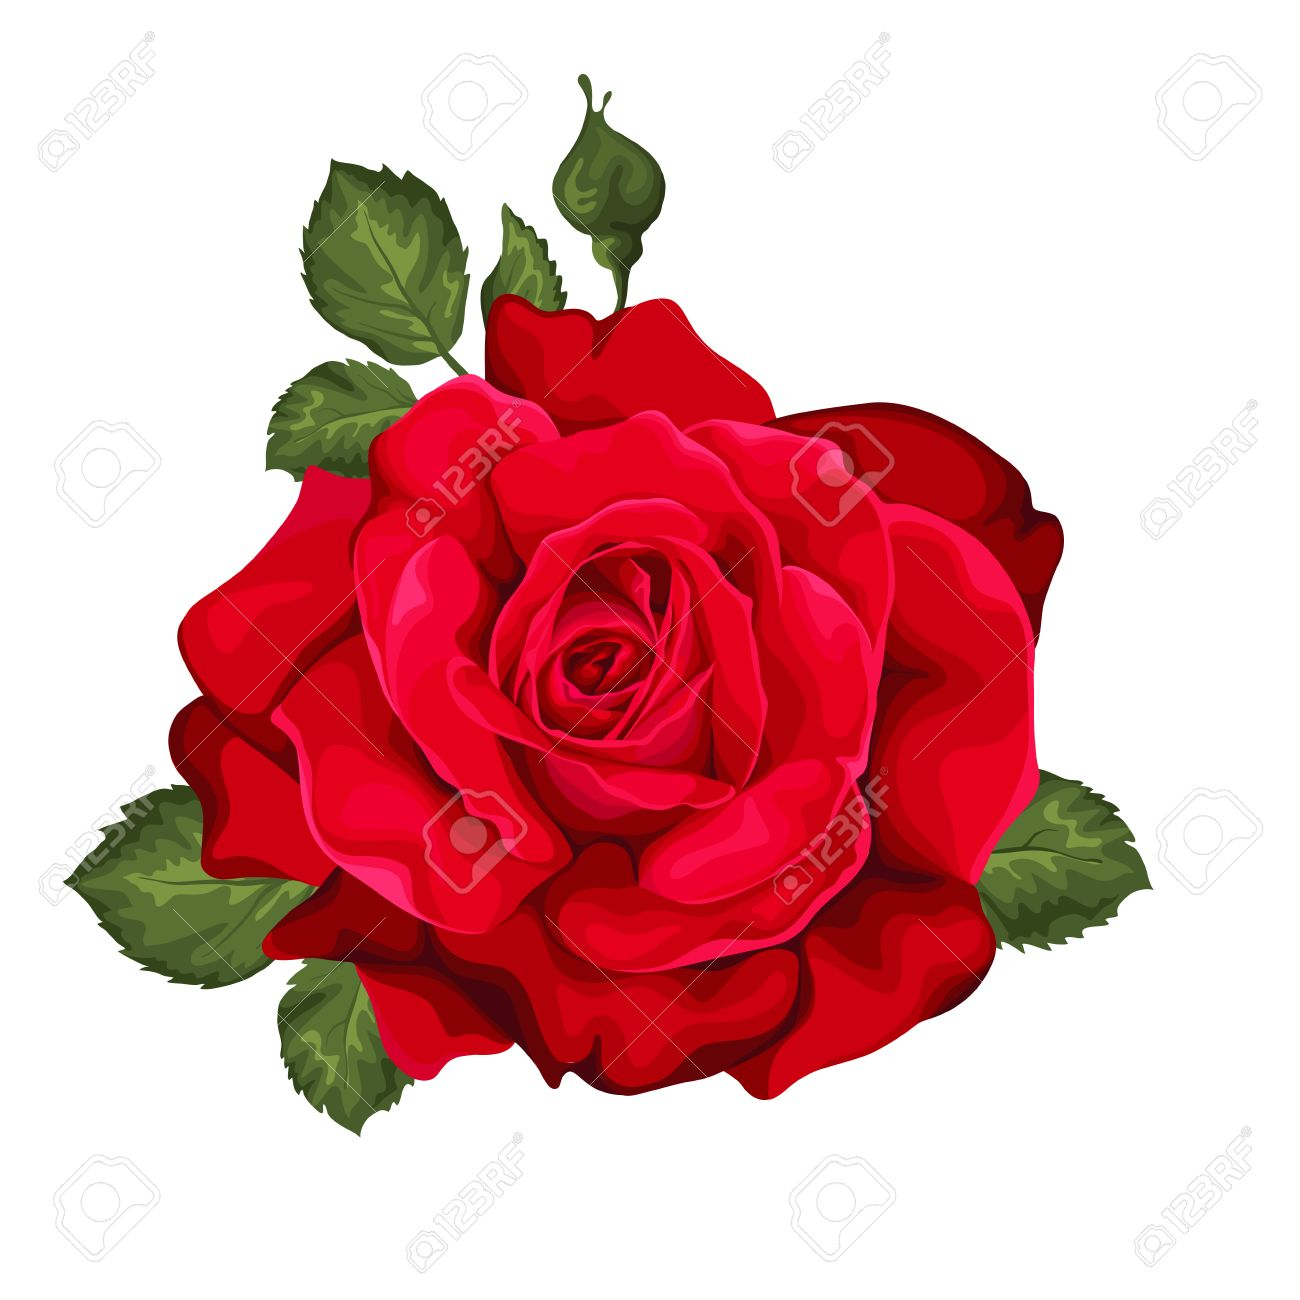 rose for valentine images u0026 stock pictures royalty free rose for